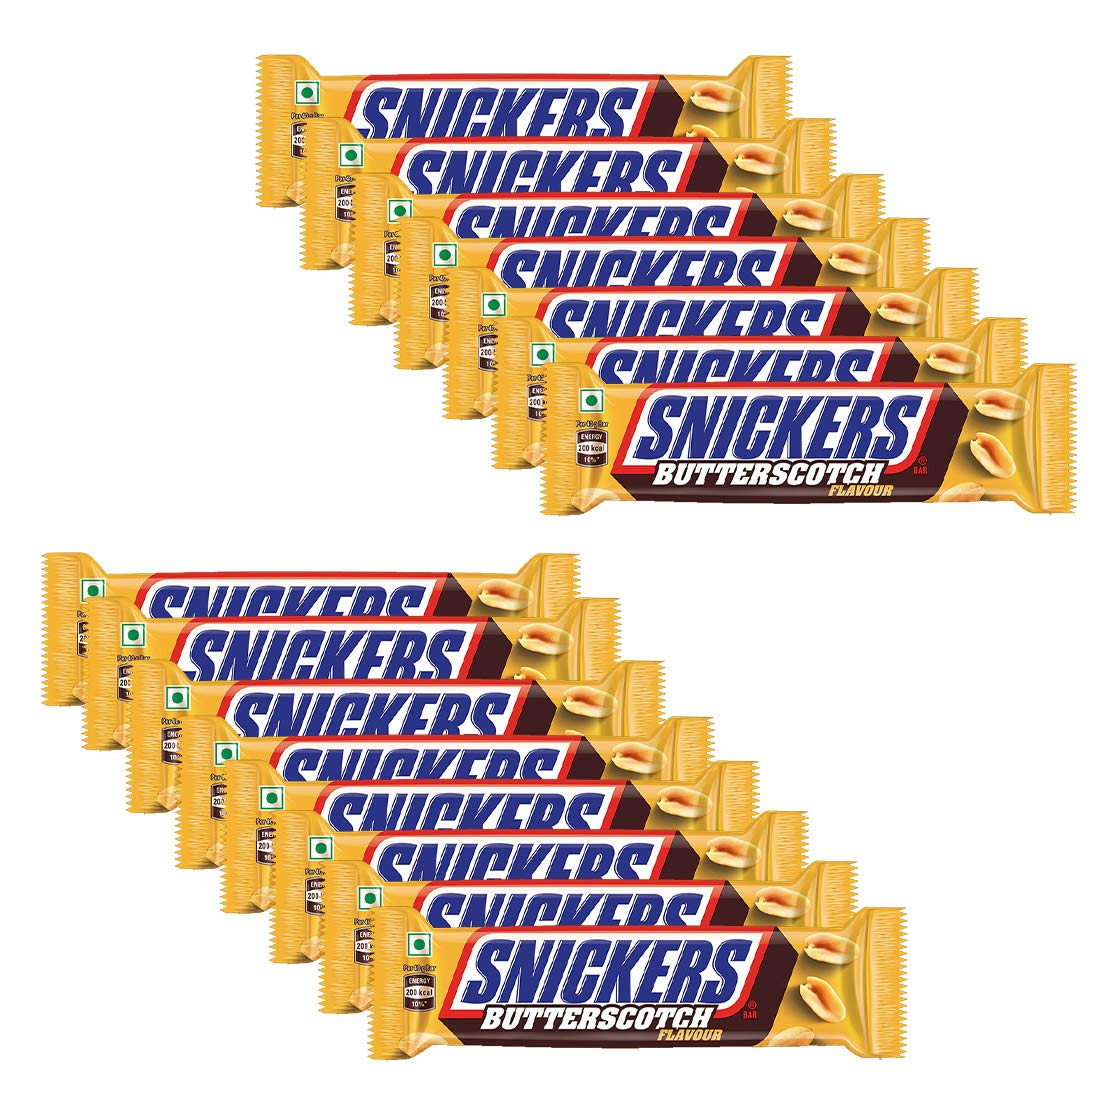 Snickers Butterscotch Flavour Chocolates Valentines Day Gift Pack- 40g Bar (Pack of 15)